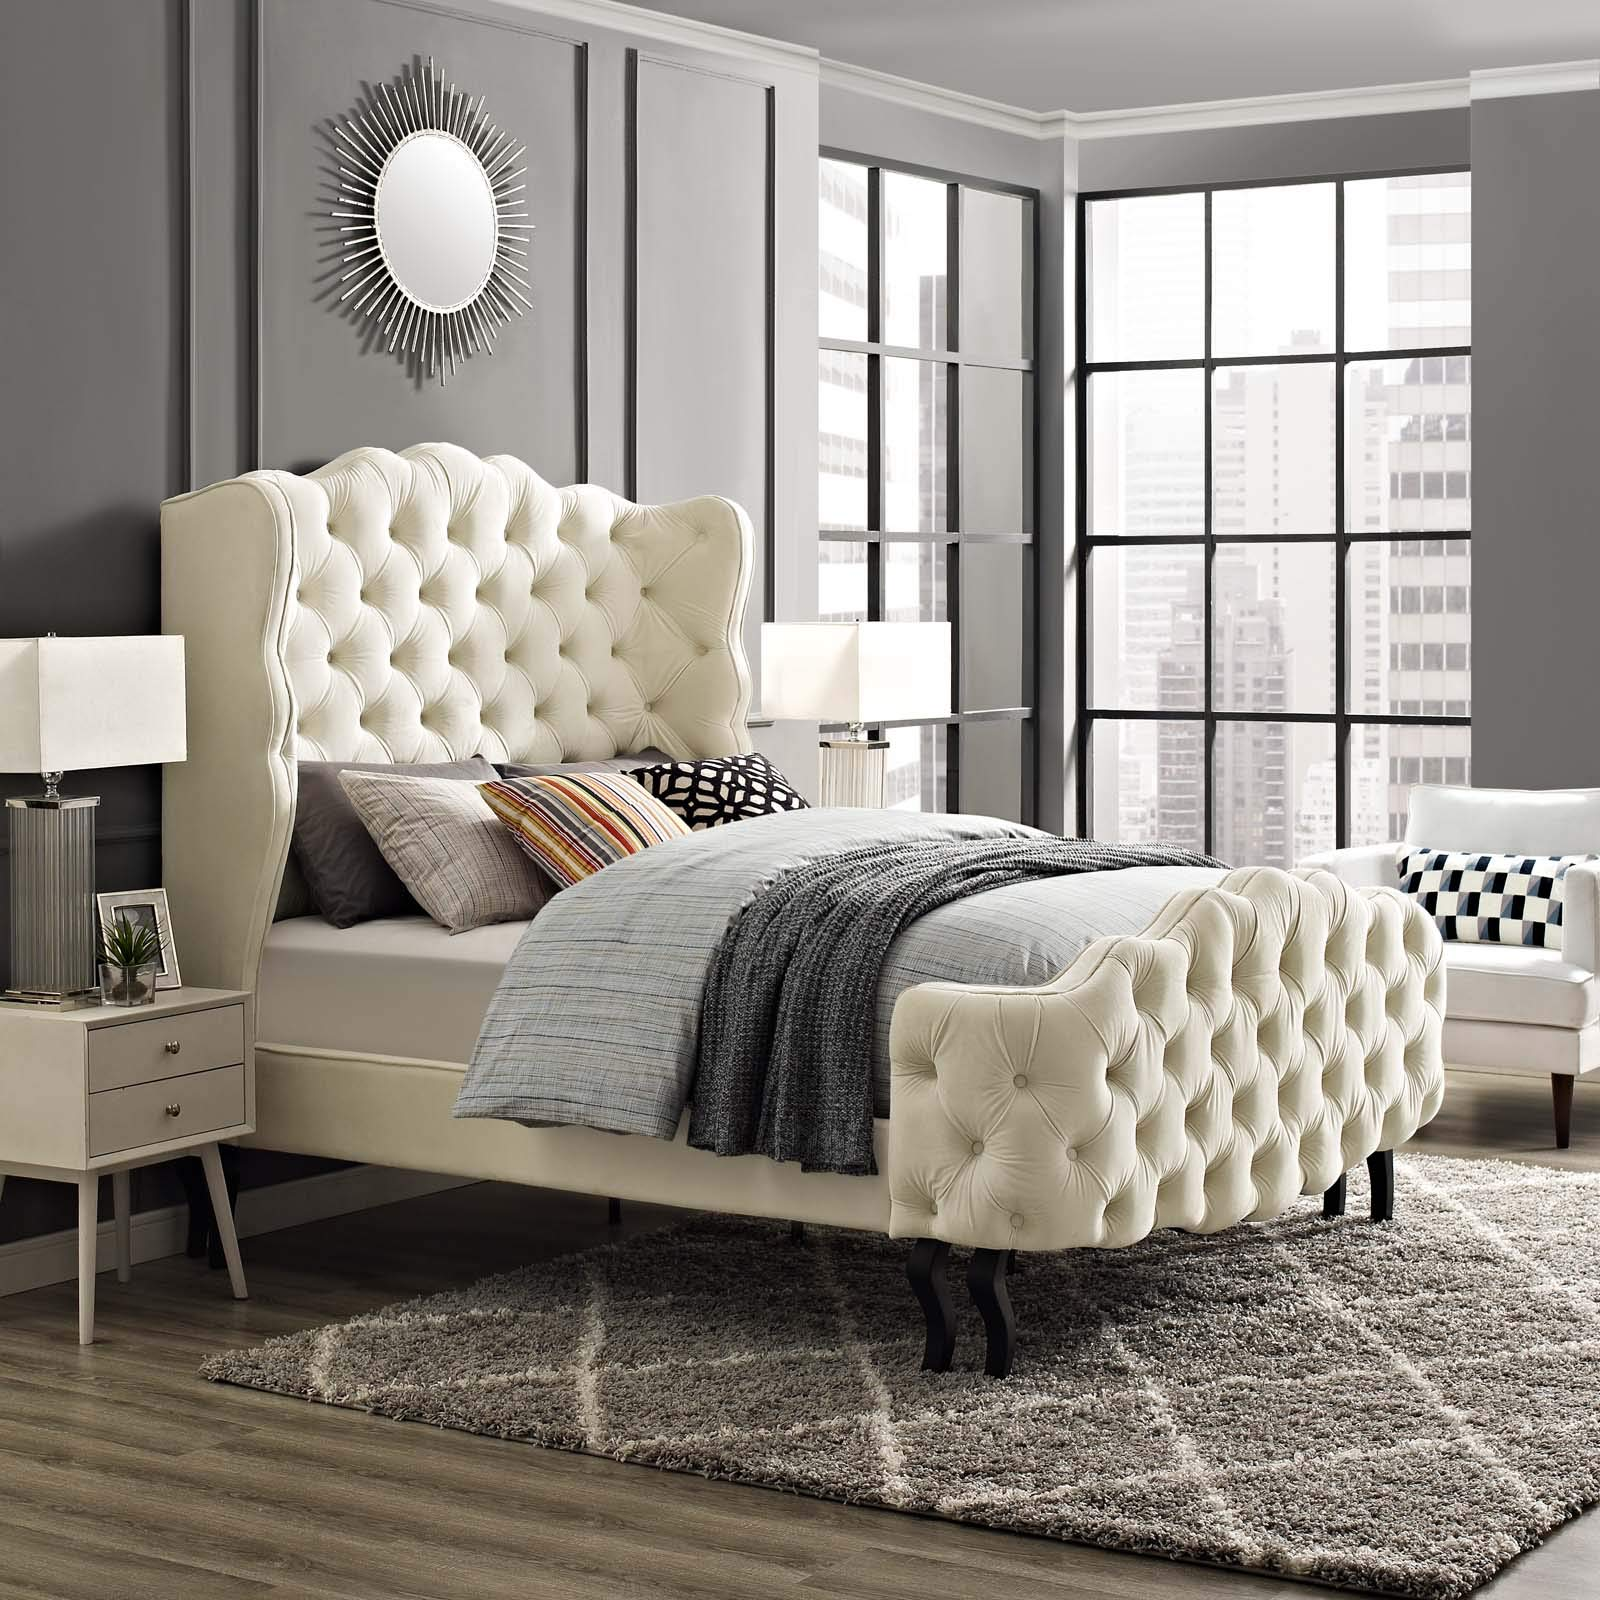 Modway Violette Performance Velvet Tufted Wingback Queen Platform Bed in Ivory